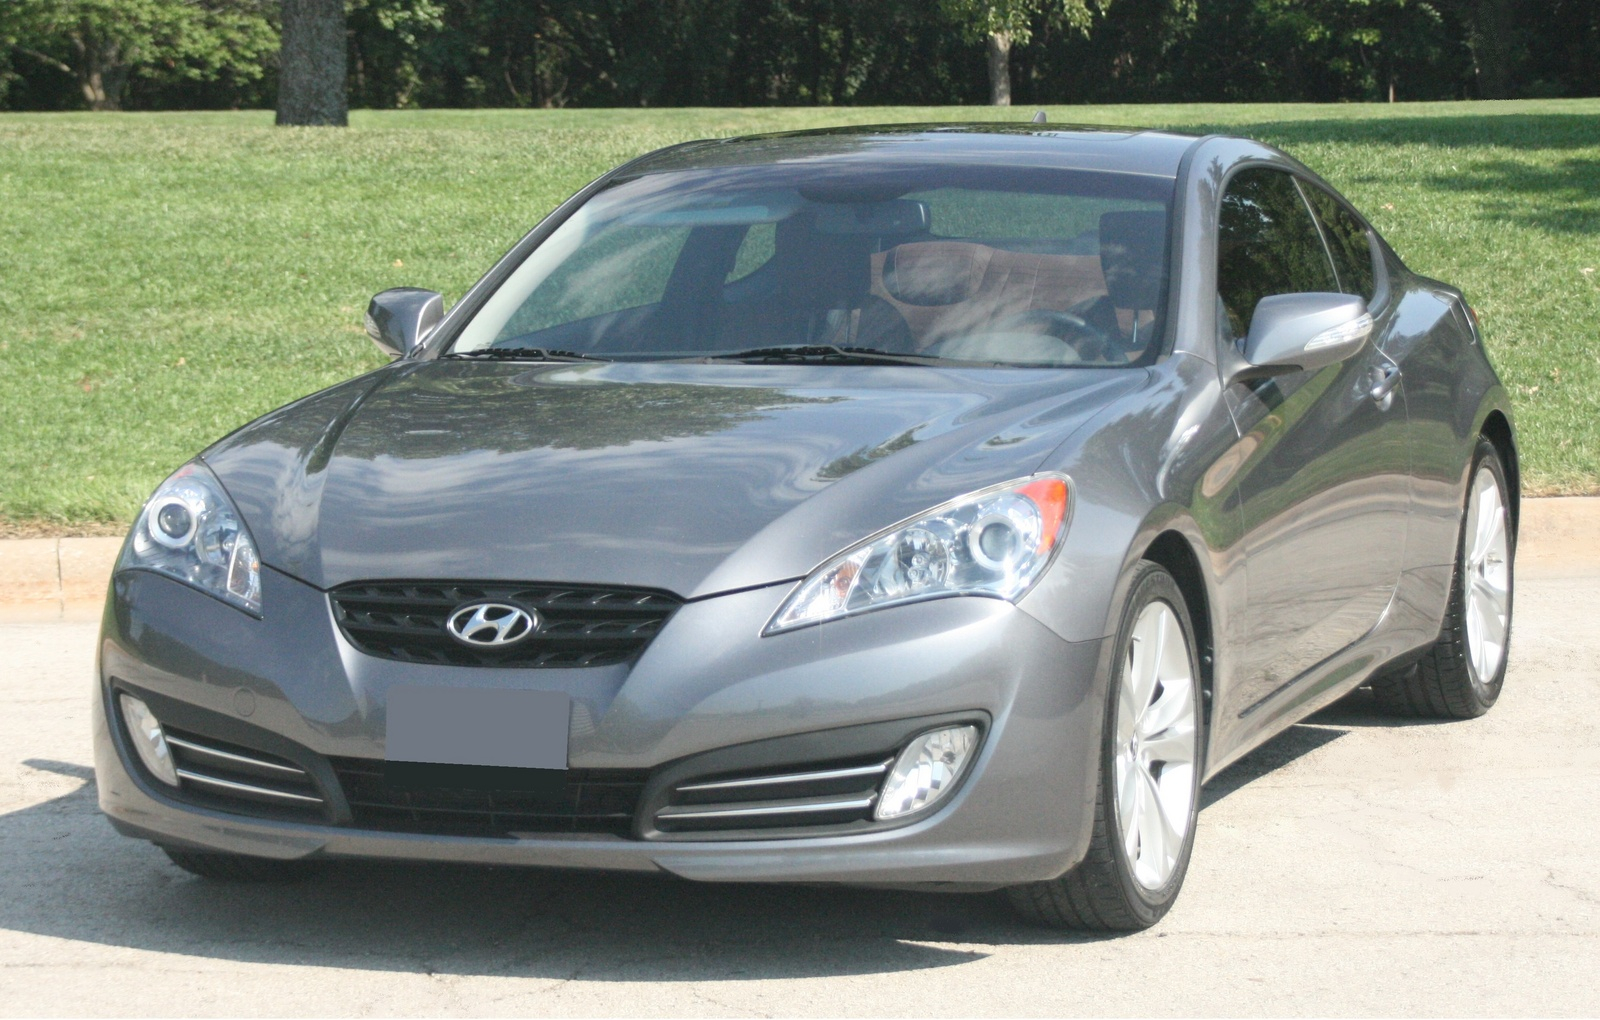 picture of 2010 hyundai genesis coupe 3 8 grand touring exterior. Black Bedroom Furniture Sets. Home Design Ideas